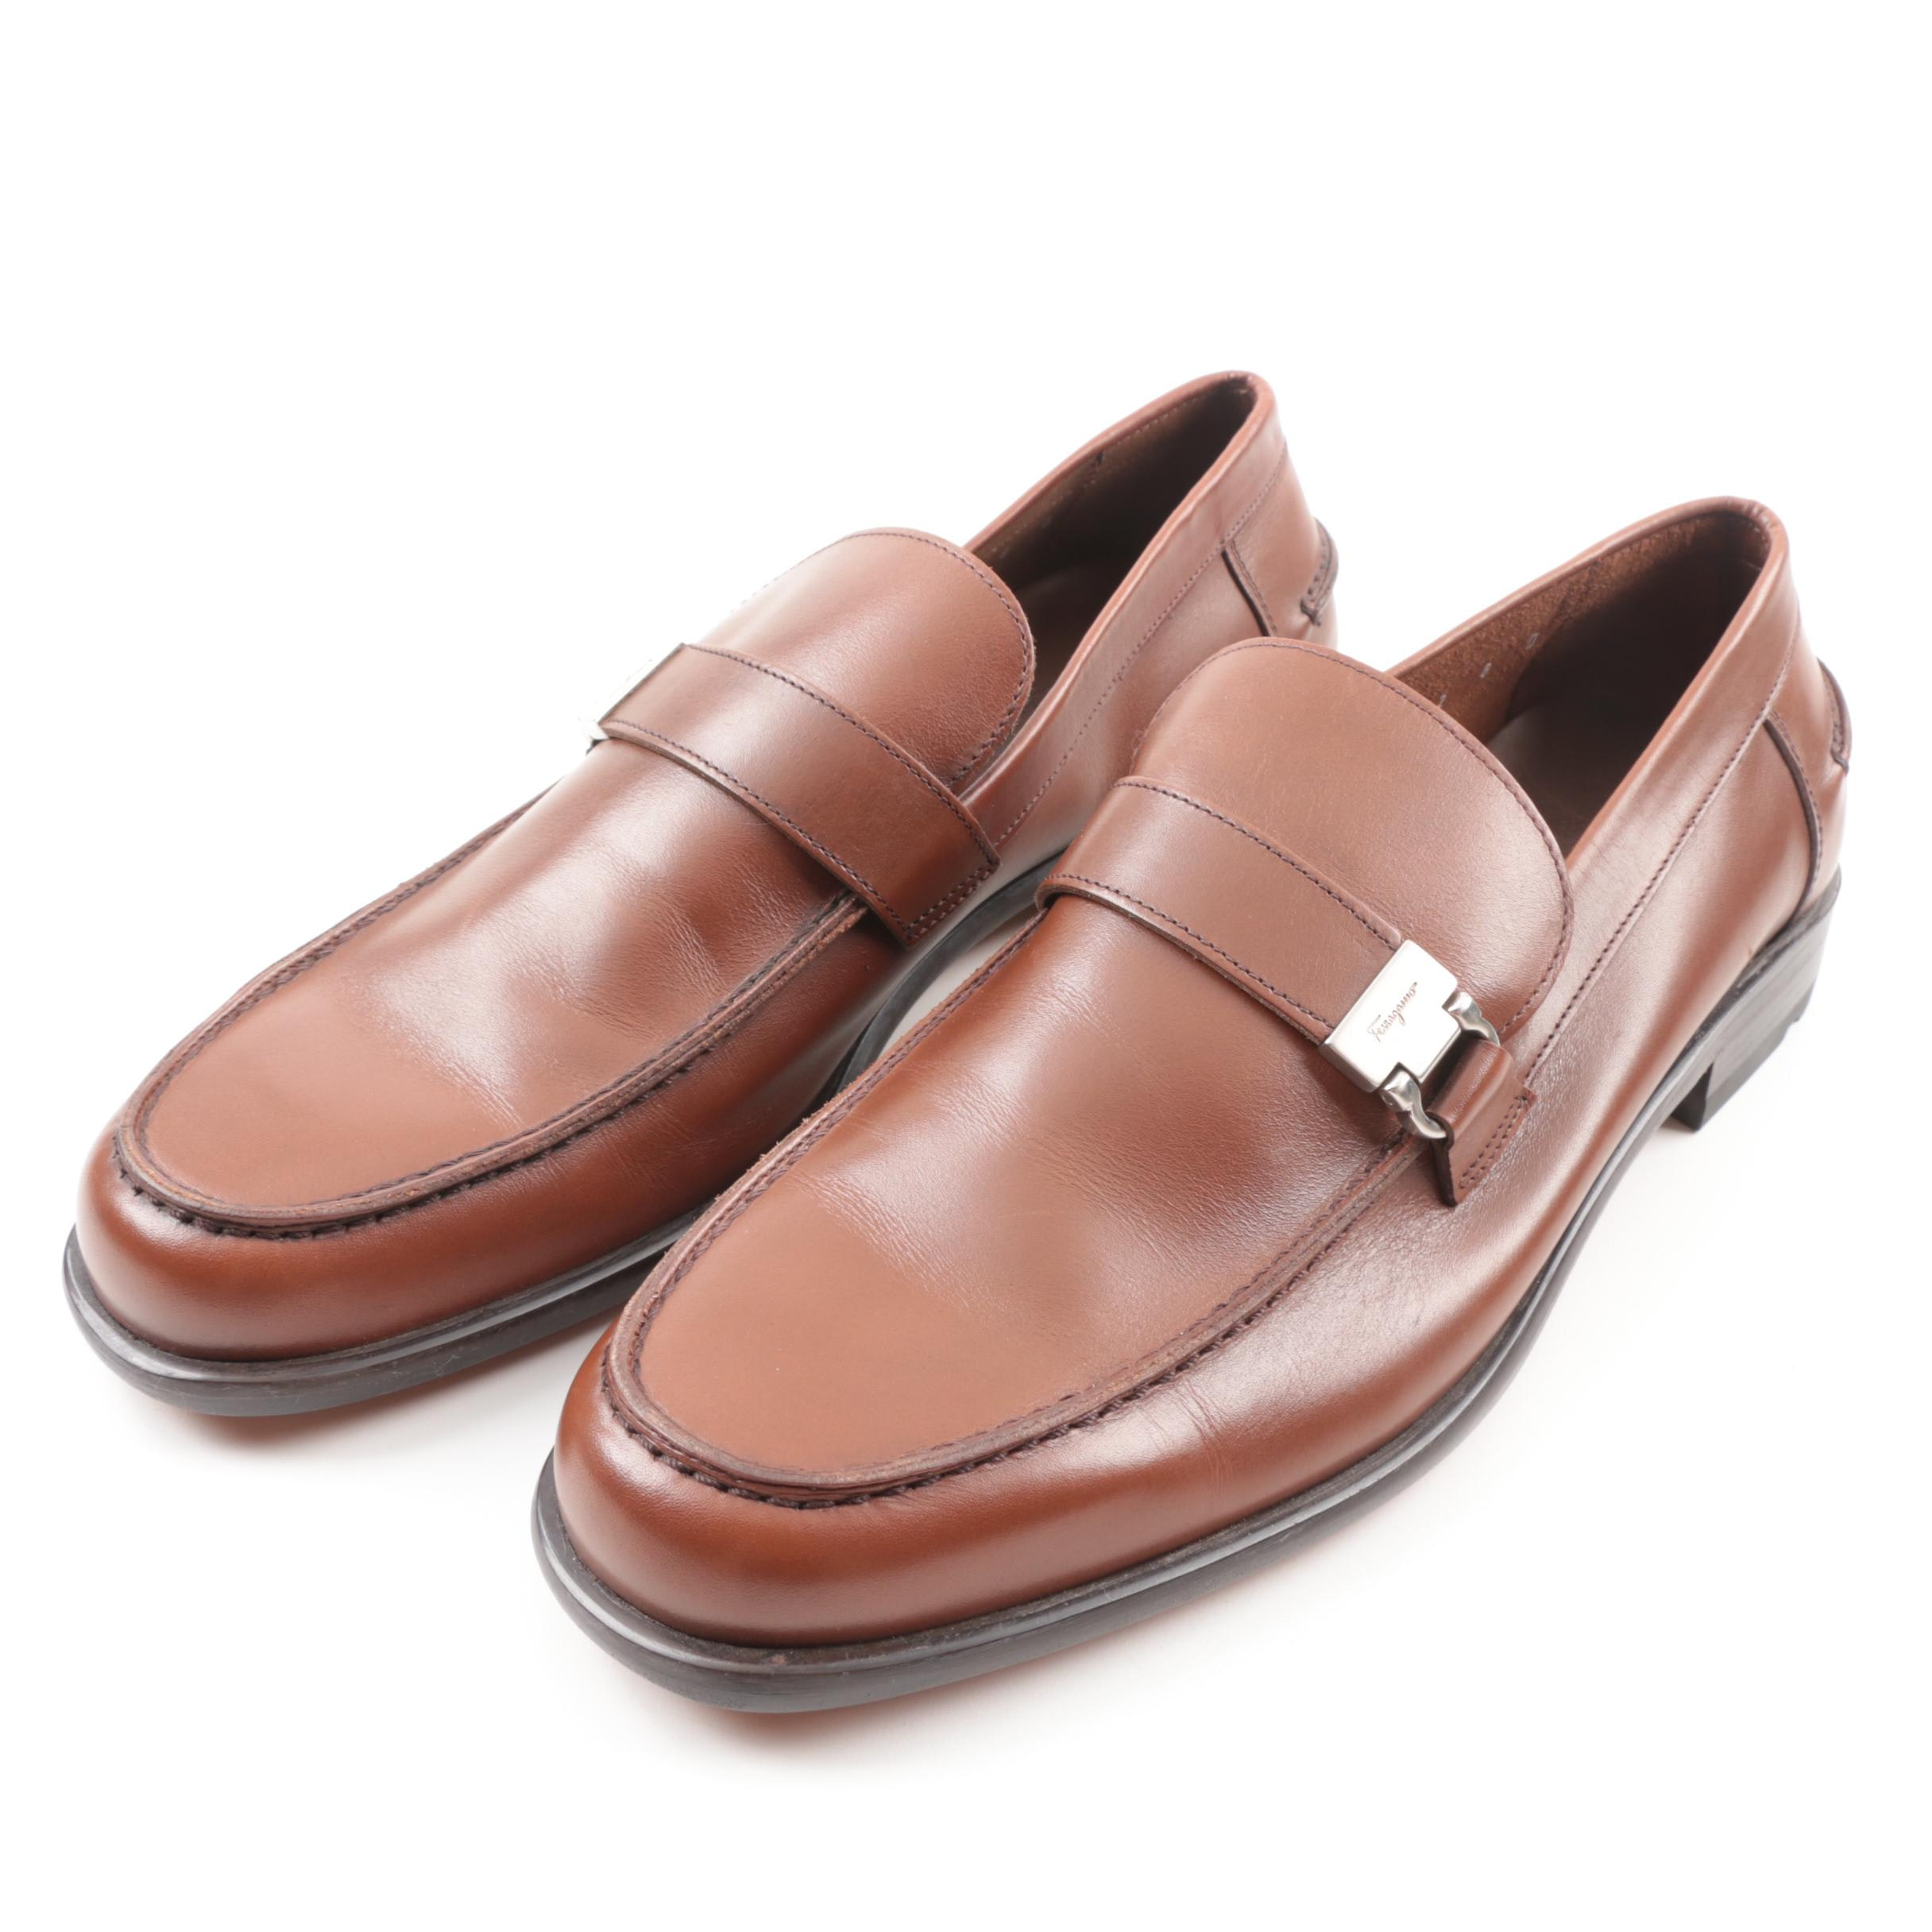 Ferragamo Studio Men's Brown Leather Loafers